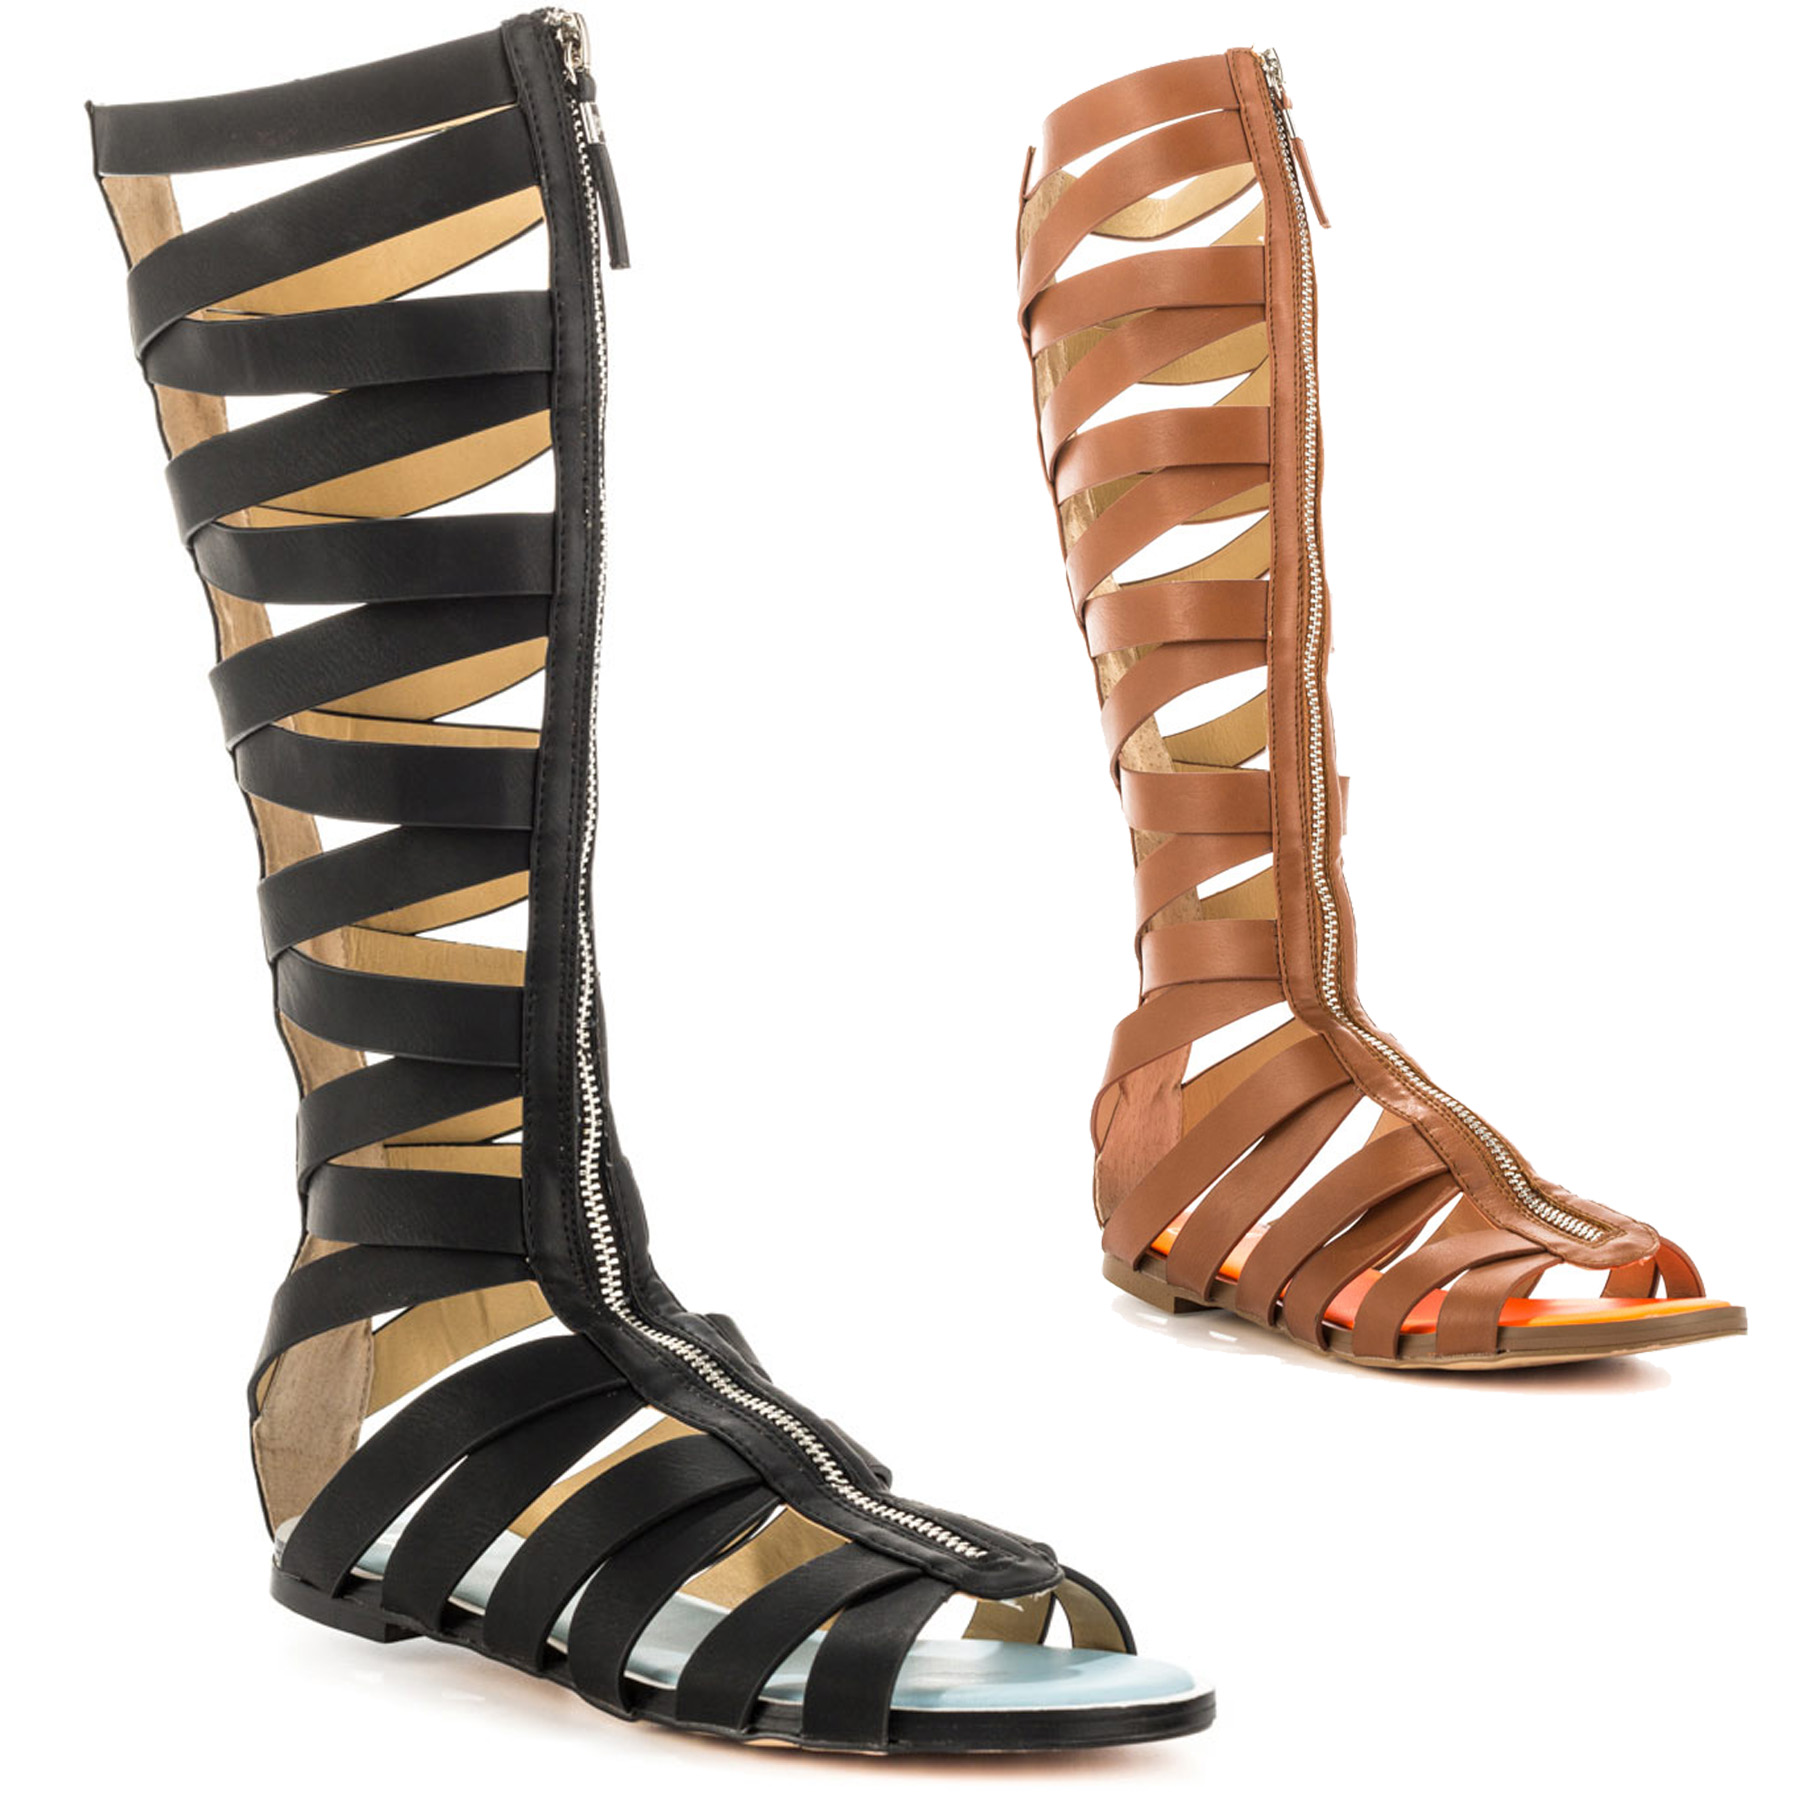 59839ea52a6 Find knee high gladiator sandals from a vast selection of